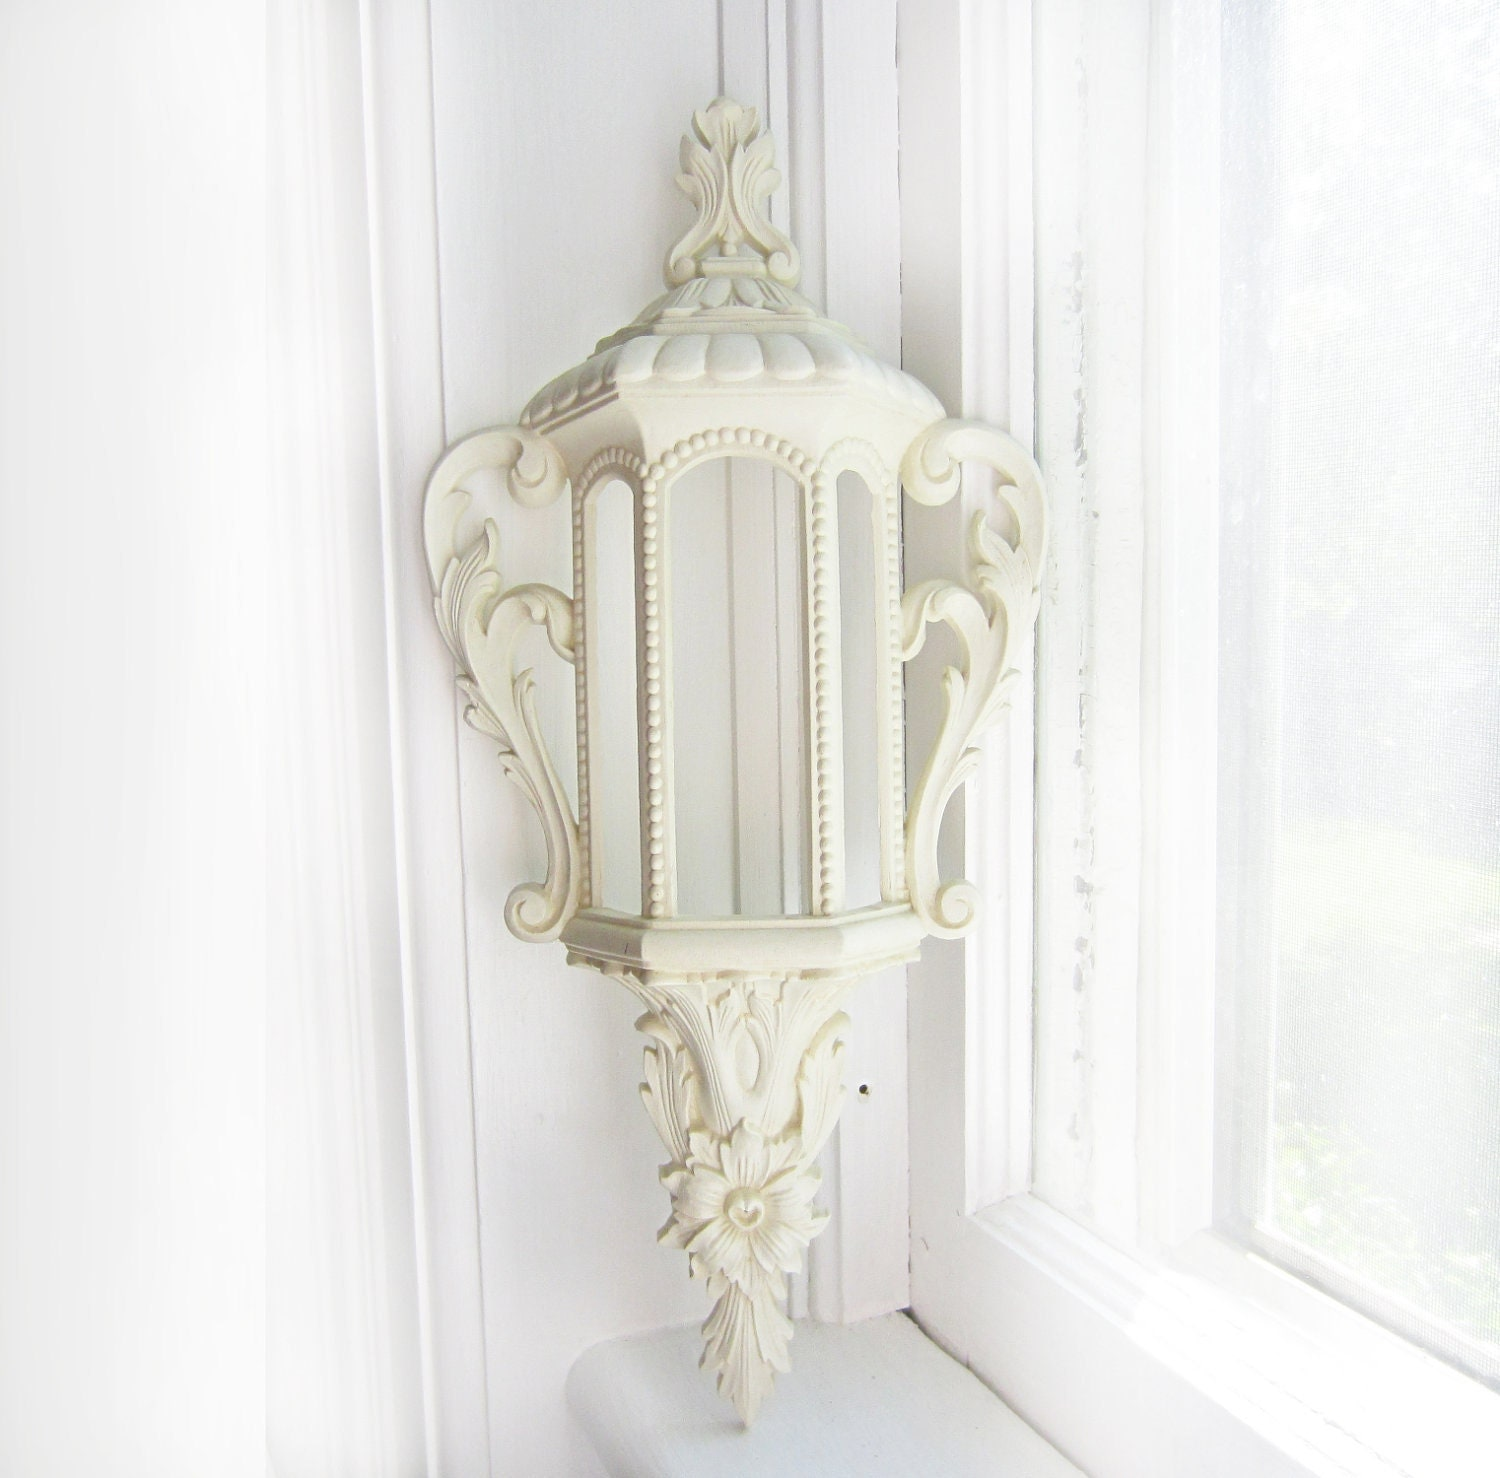 Vintage White Burwood Lantern Wall Hanging- 585-1 A - TheeLetterQ